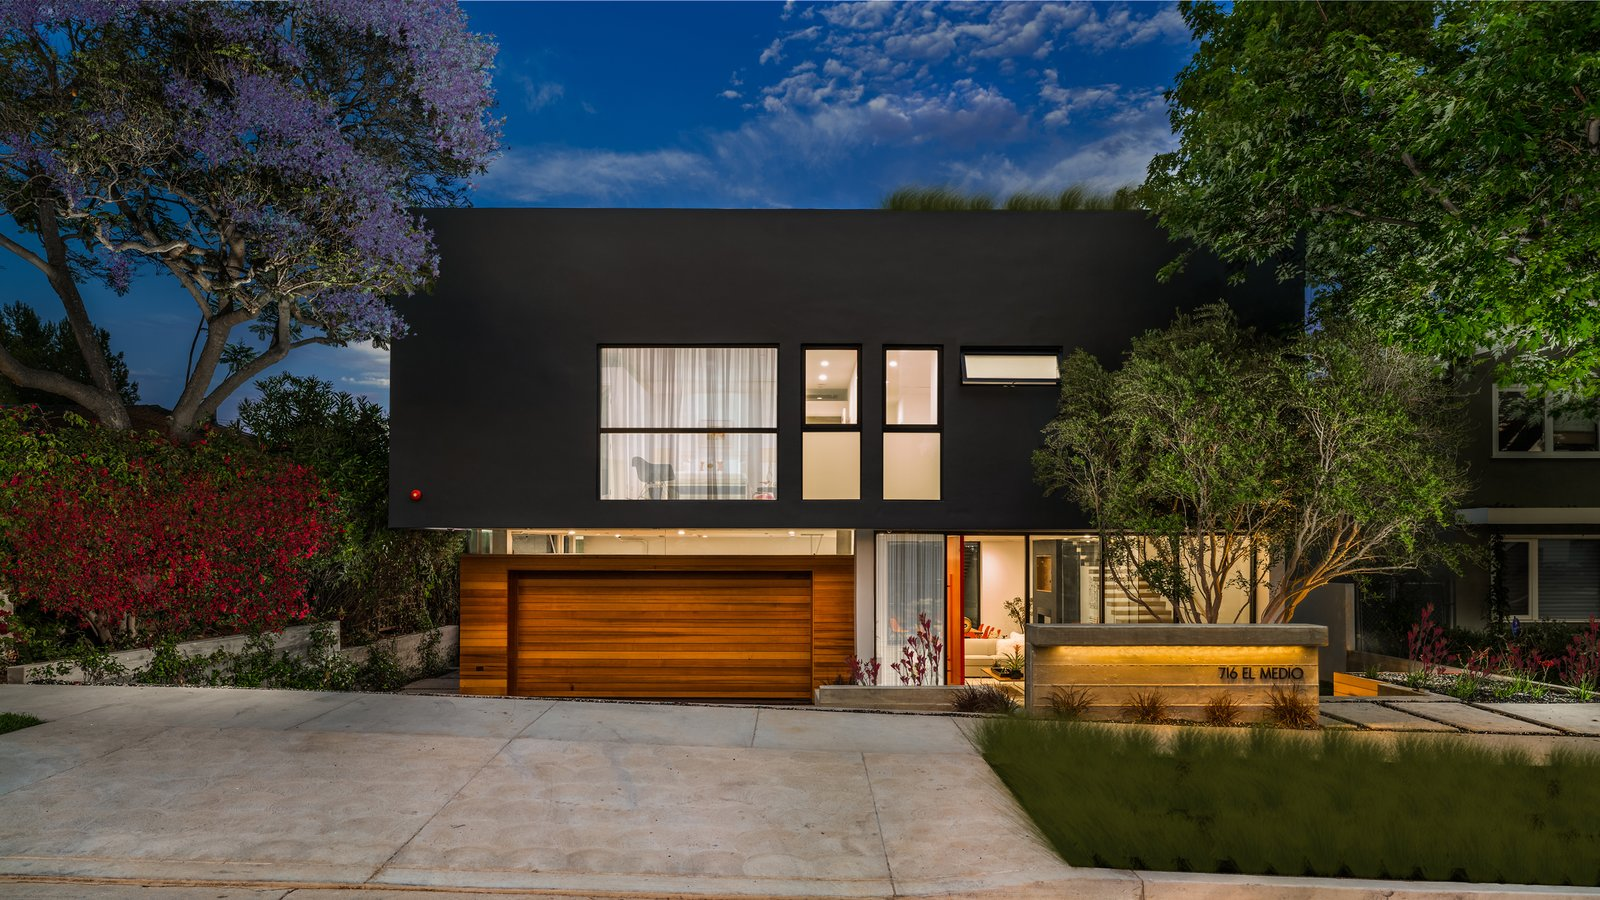 The Middle House by bryan winters, aia, ncarb